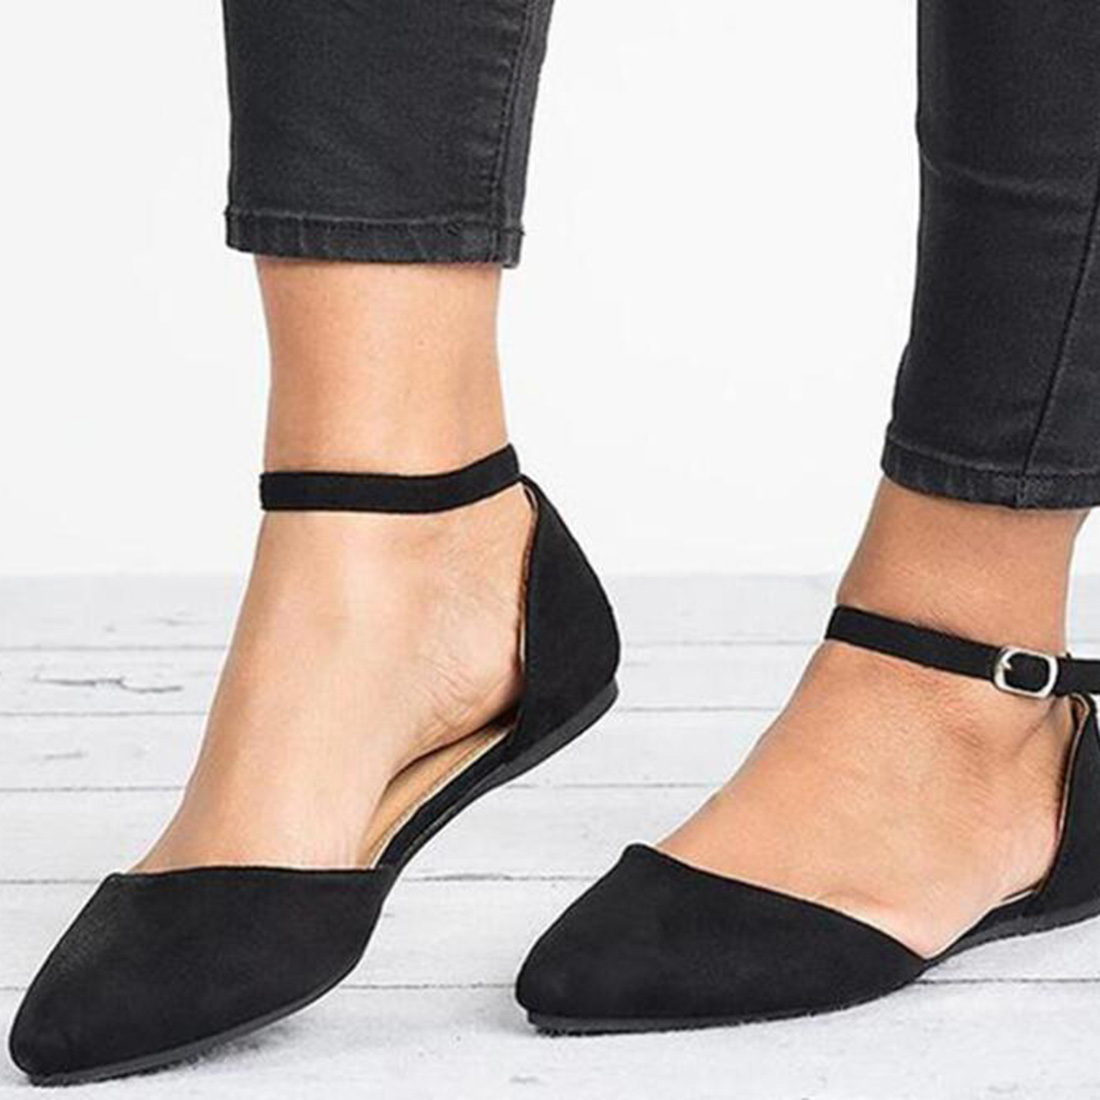 Puimentiua Flat Loafers For Woman Summer Square Toe Ballet Flats Casual Slip On Shoes Women Comfort Shallow Flat Leather ShoesPuimentiua Flat Loafers For Woman Summer Square Toe Ballet Flats Casual Slip On Shoes Women Comfort Shallow Flat Leather Shoes